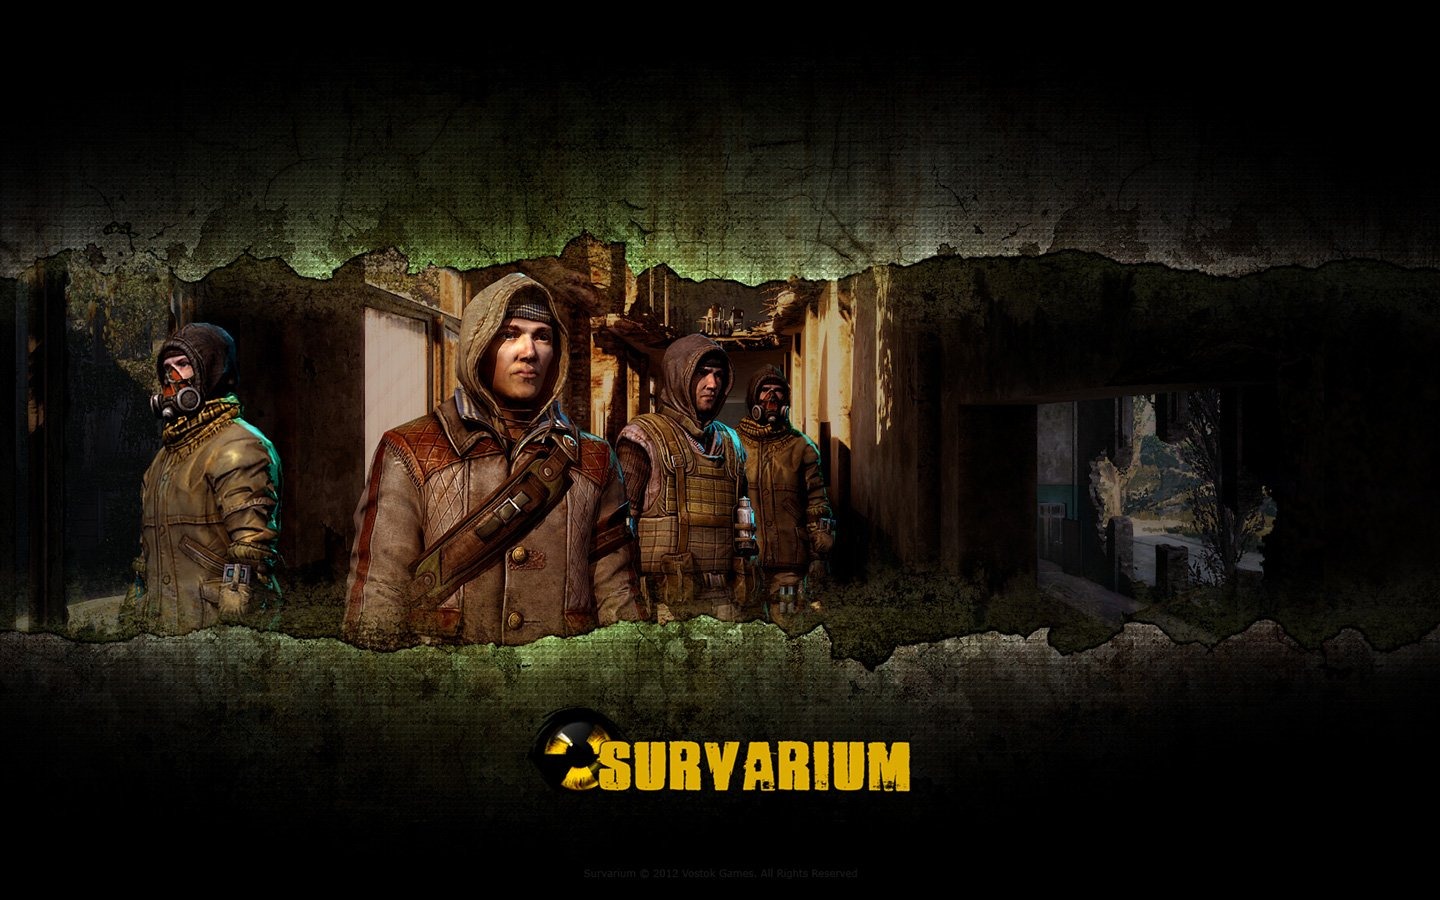 Survarium Wallpaper in 1440x900 1440x900